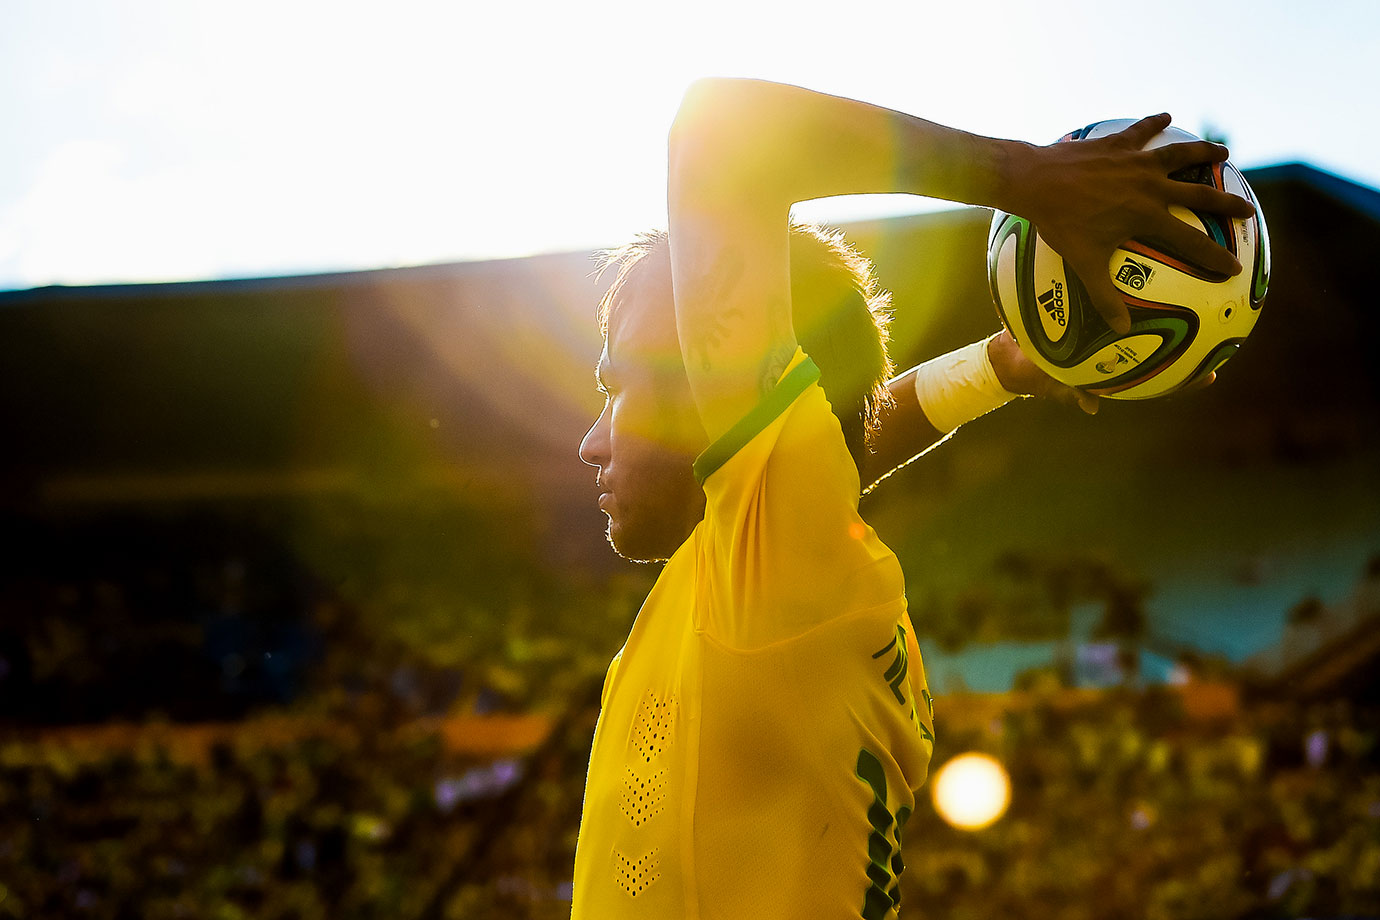 Neymar looks to throw-in the ball during Brazil's International Friendly match against Panama on June 03, 2014 at Serra Dourada Stadium in Goiania, Brazil.